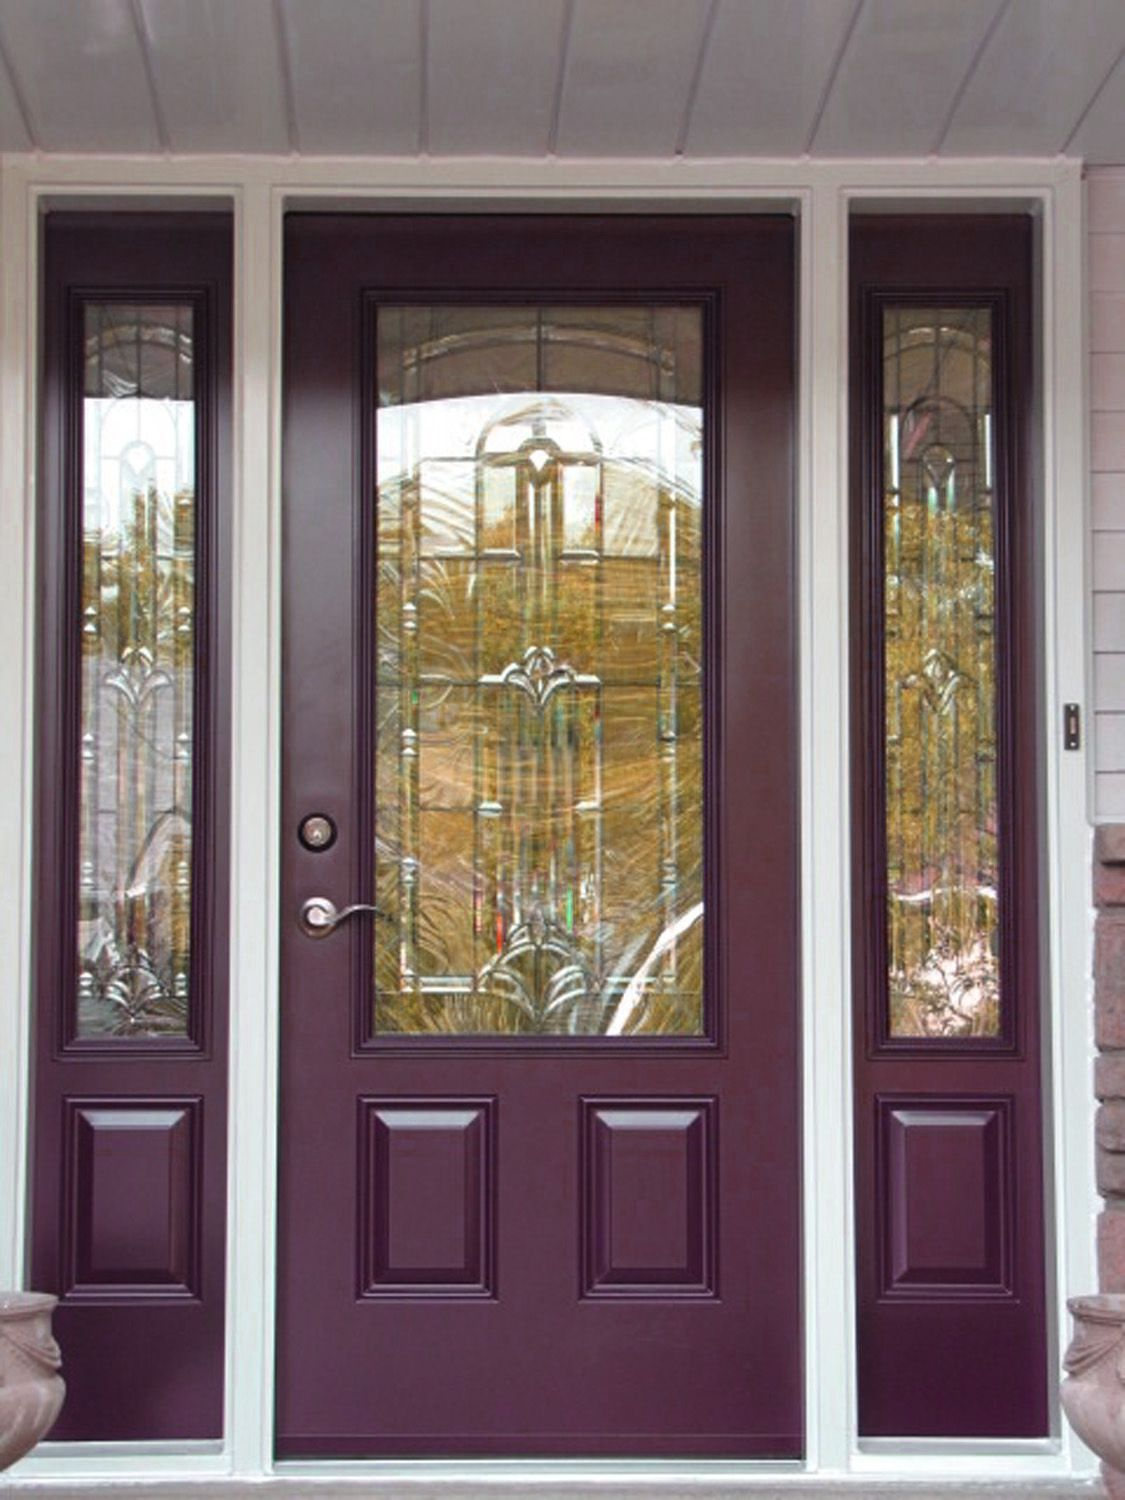 Door design in india photo door design pinterest for Door design india